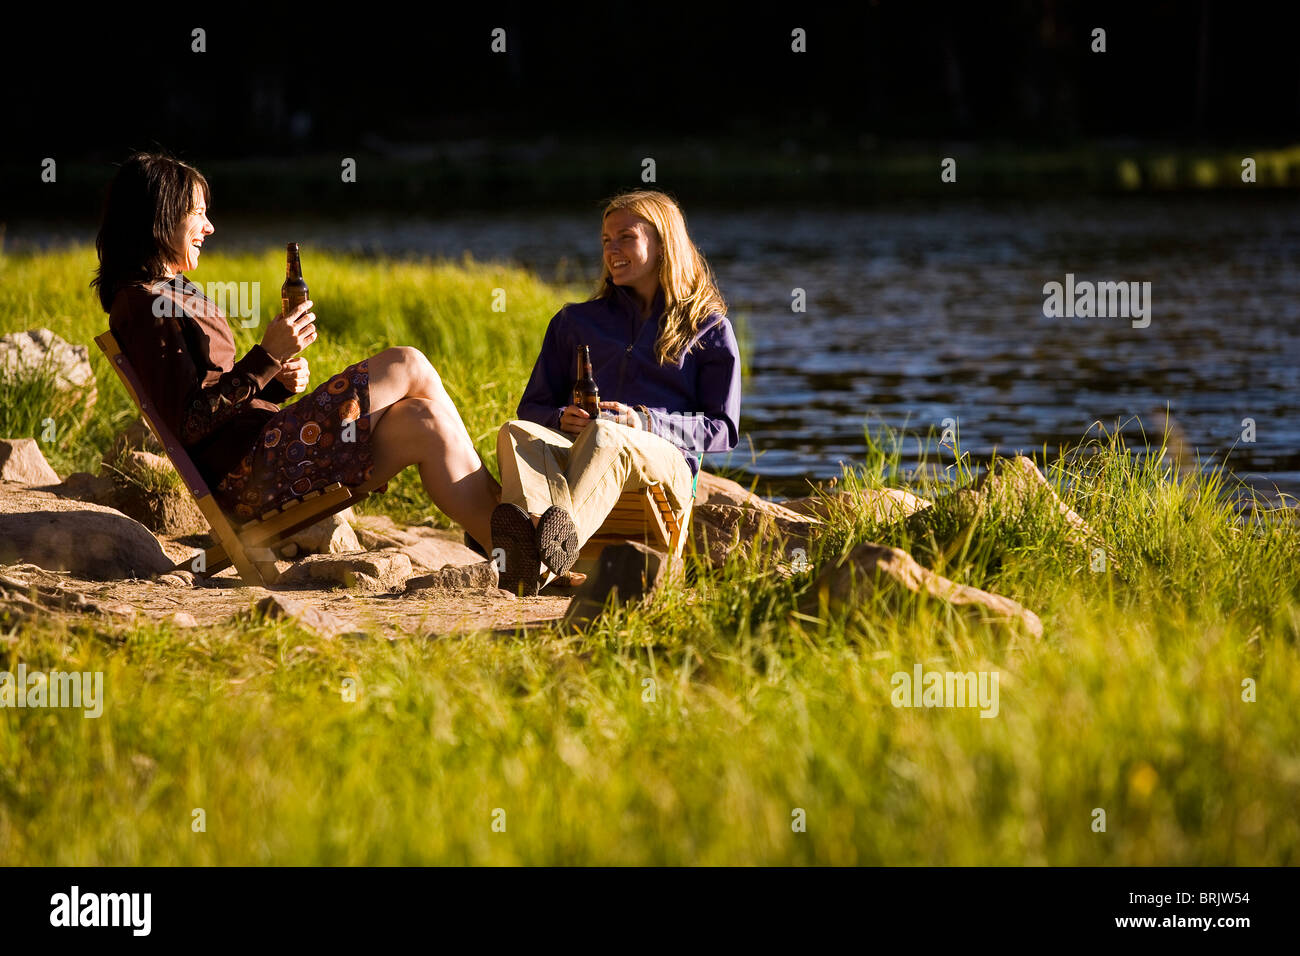 Two women enjoy one another's company and a beer on the shore of a mountain lake. - Stock Image